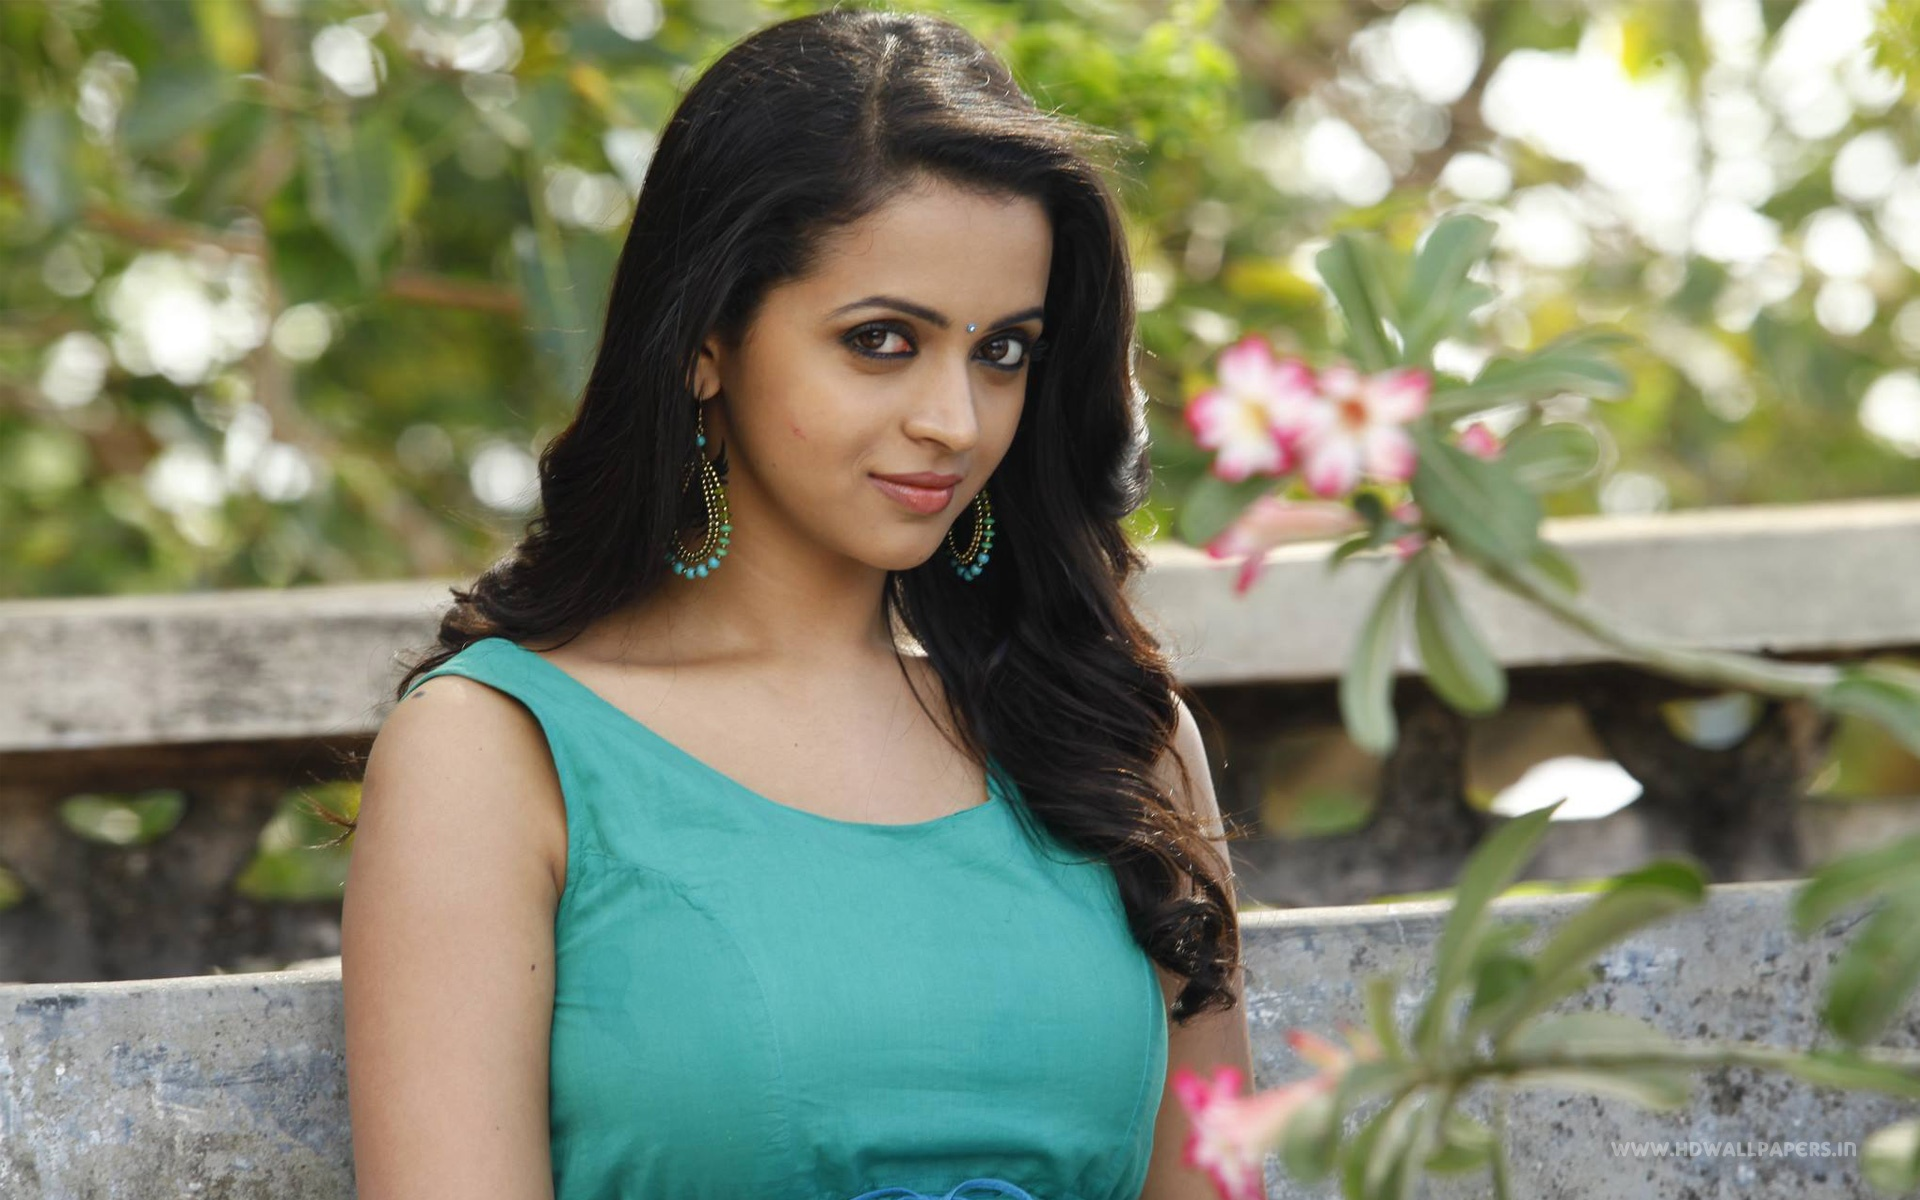 Bhavana Tamil Actress Wallpapers In Jpg Format For Free Download